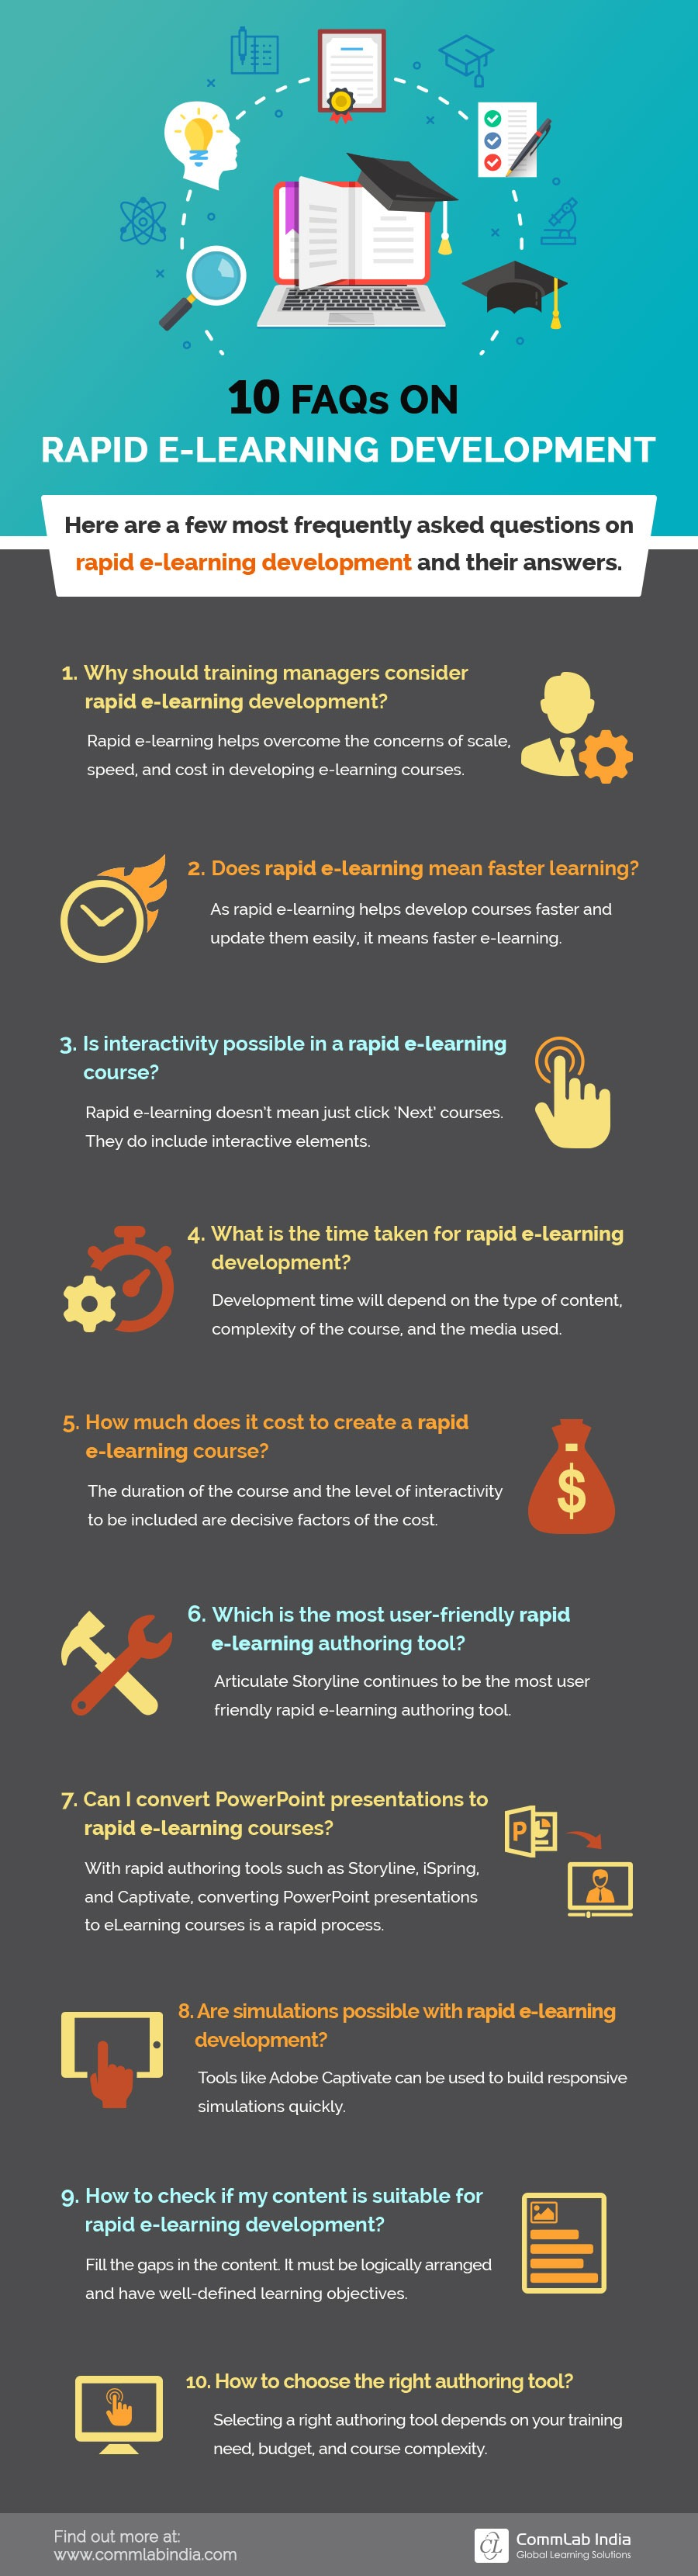 10 FAQs on Rapid E-learning Development [Infographic]